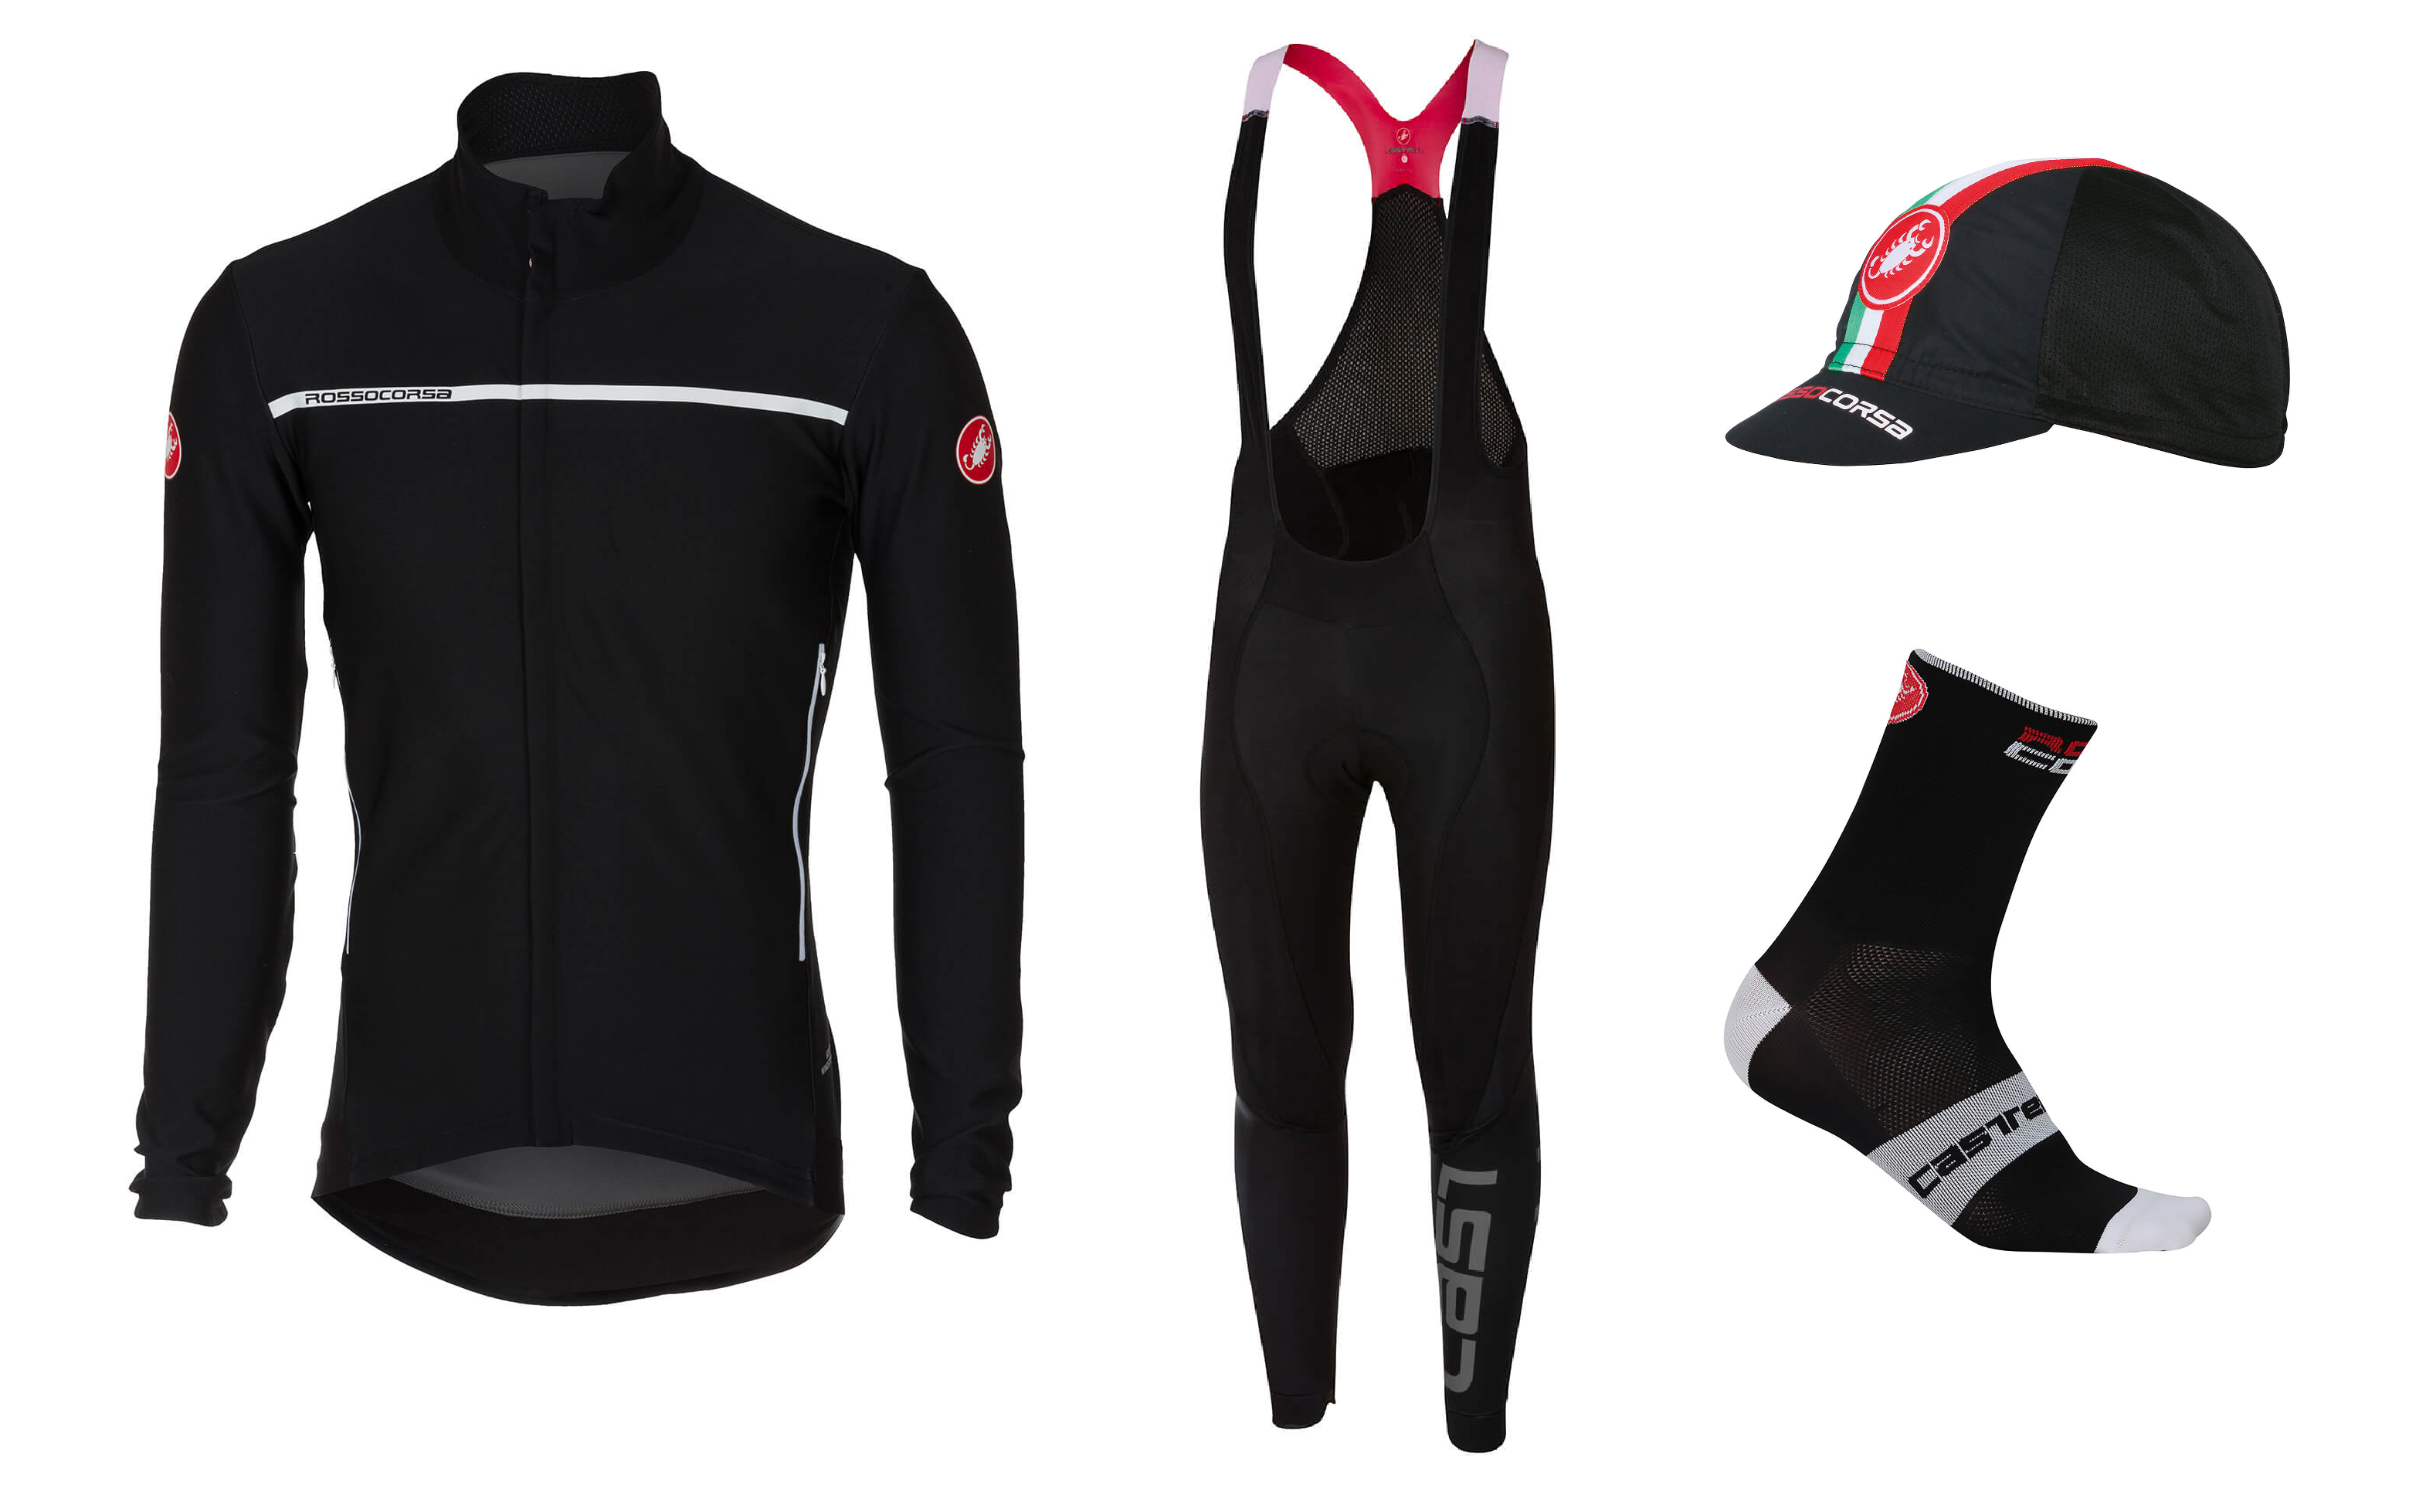 the perfetto jersey and lightweight bib tights in the castelli spring summer 2018 range